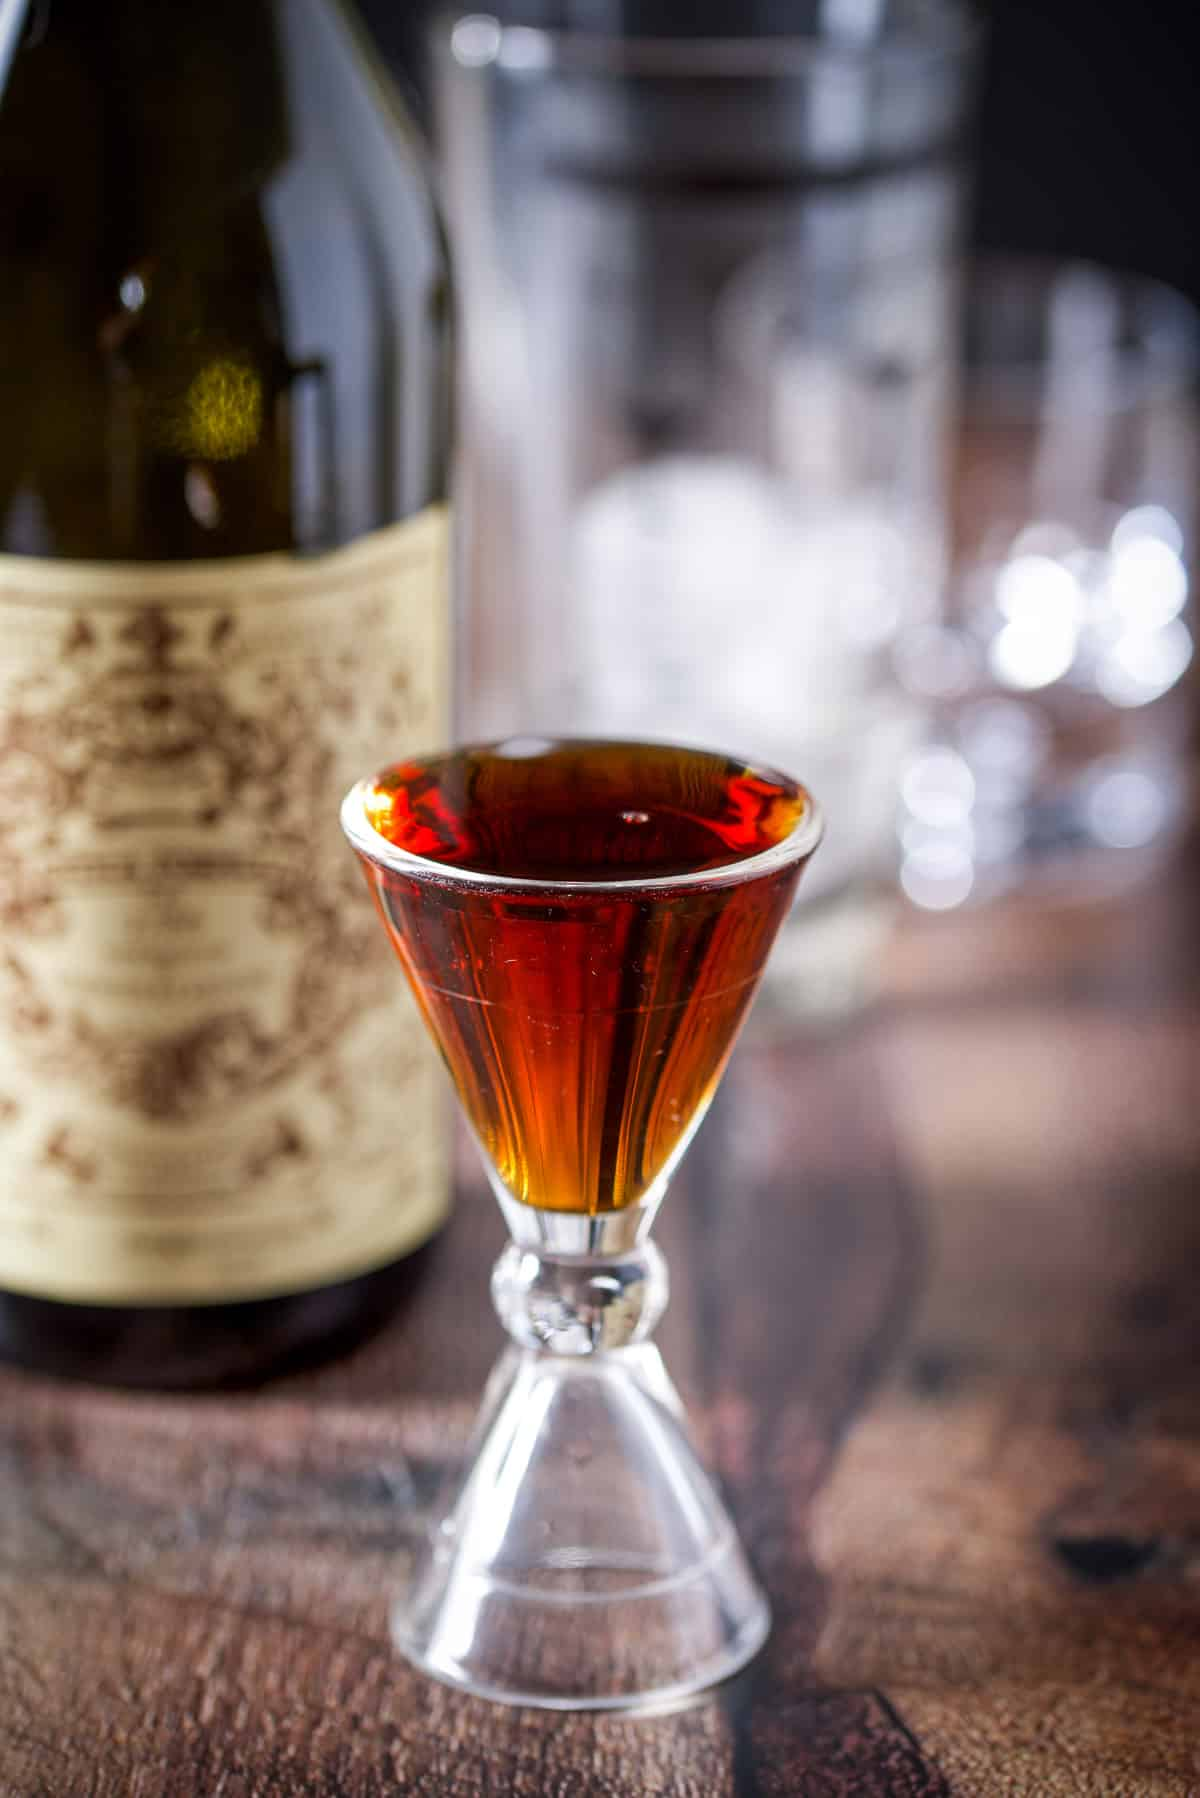 Sweet vermouth measured out with the bottle and ice filled shaker in the background